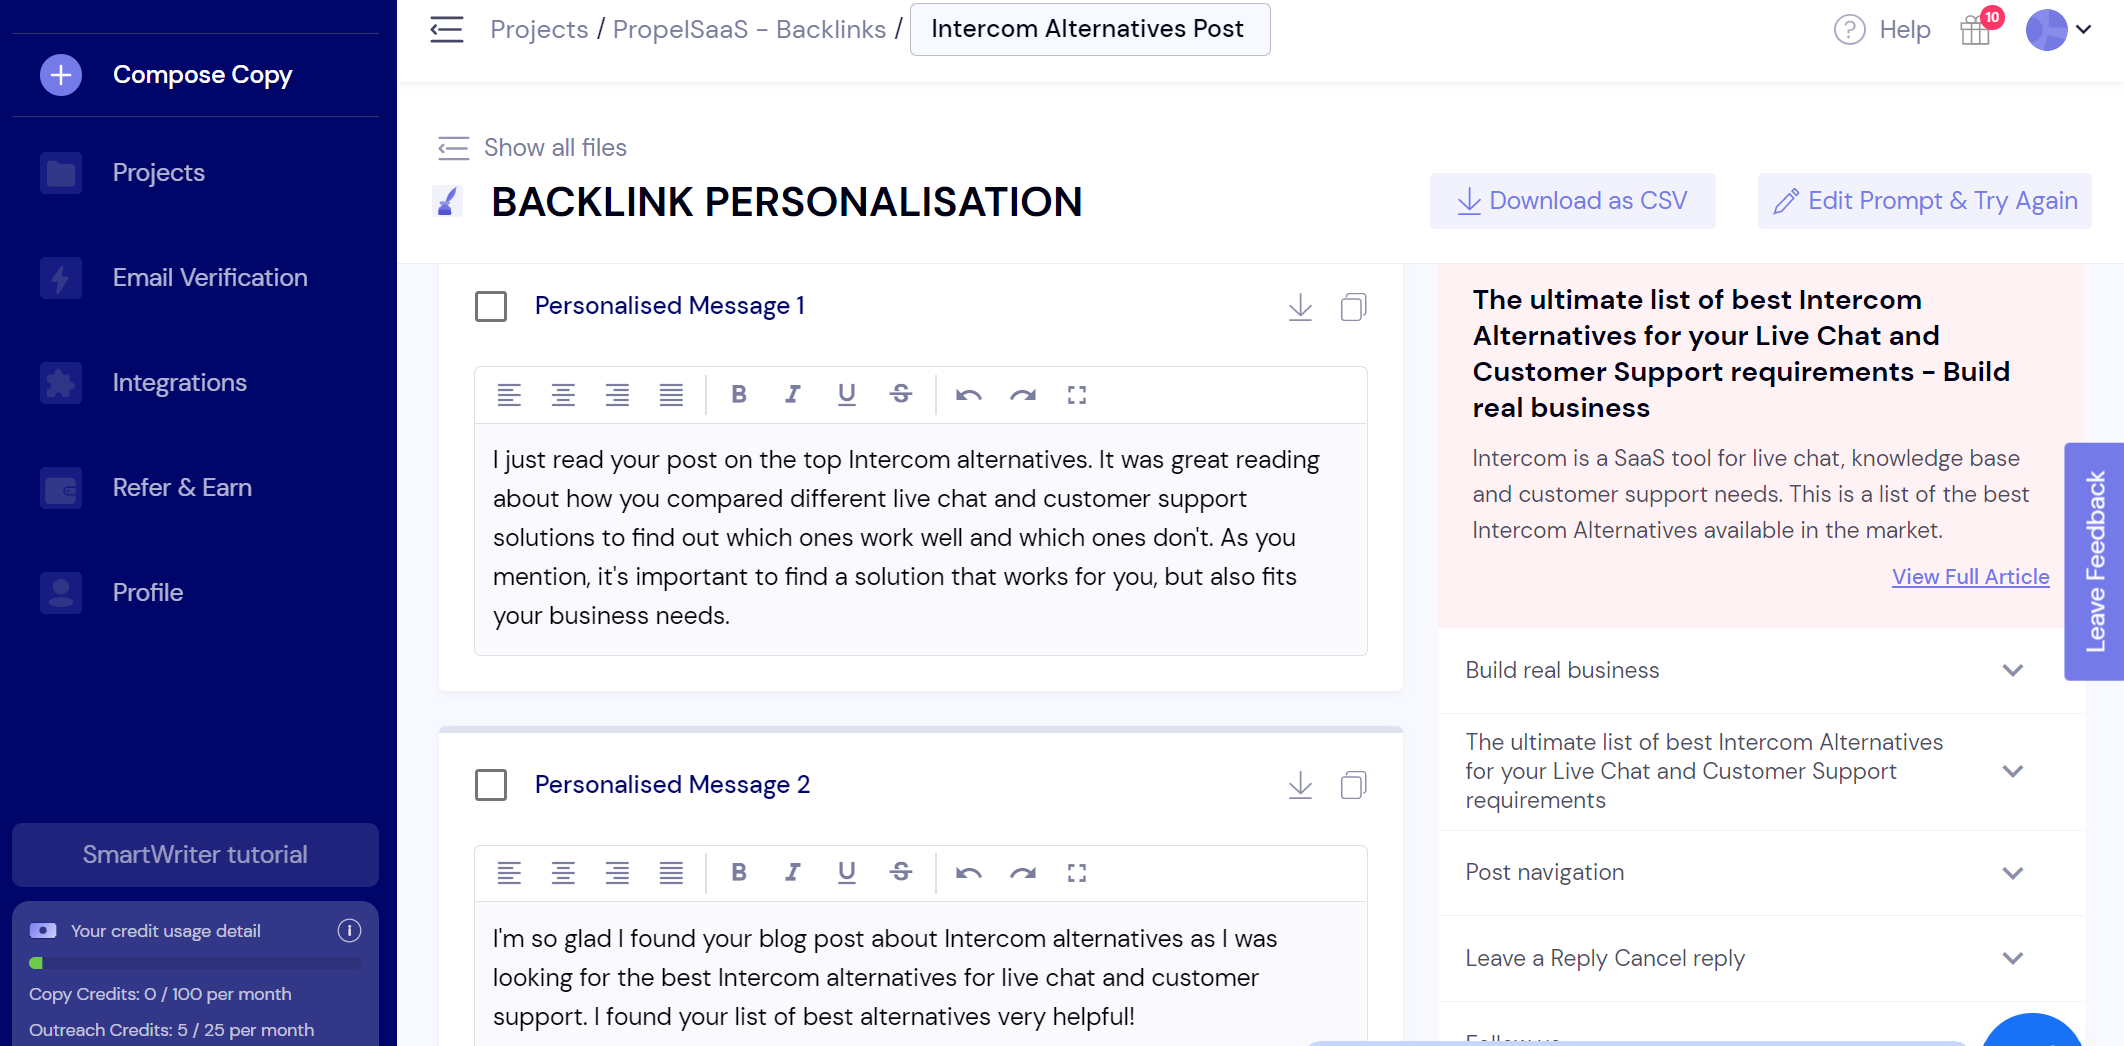 SmartWriter - Personalized Backlink Outreach